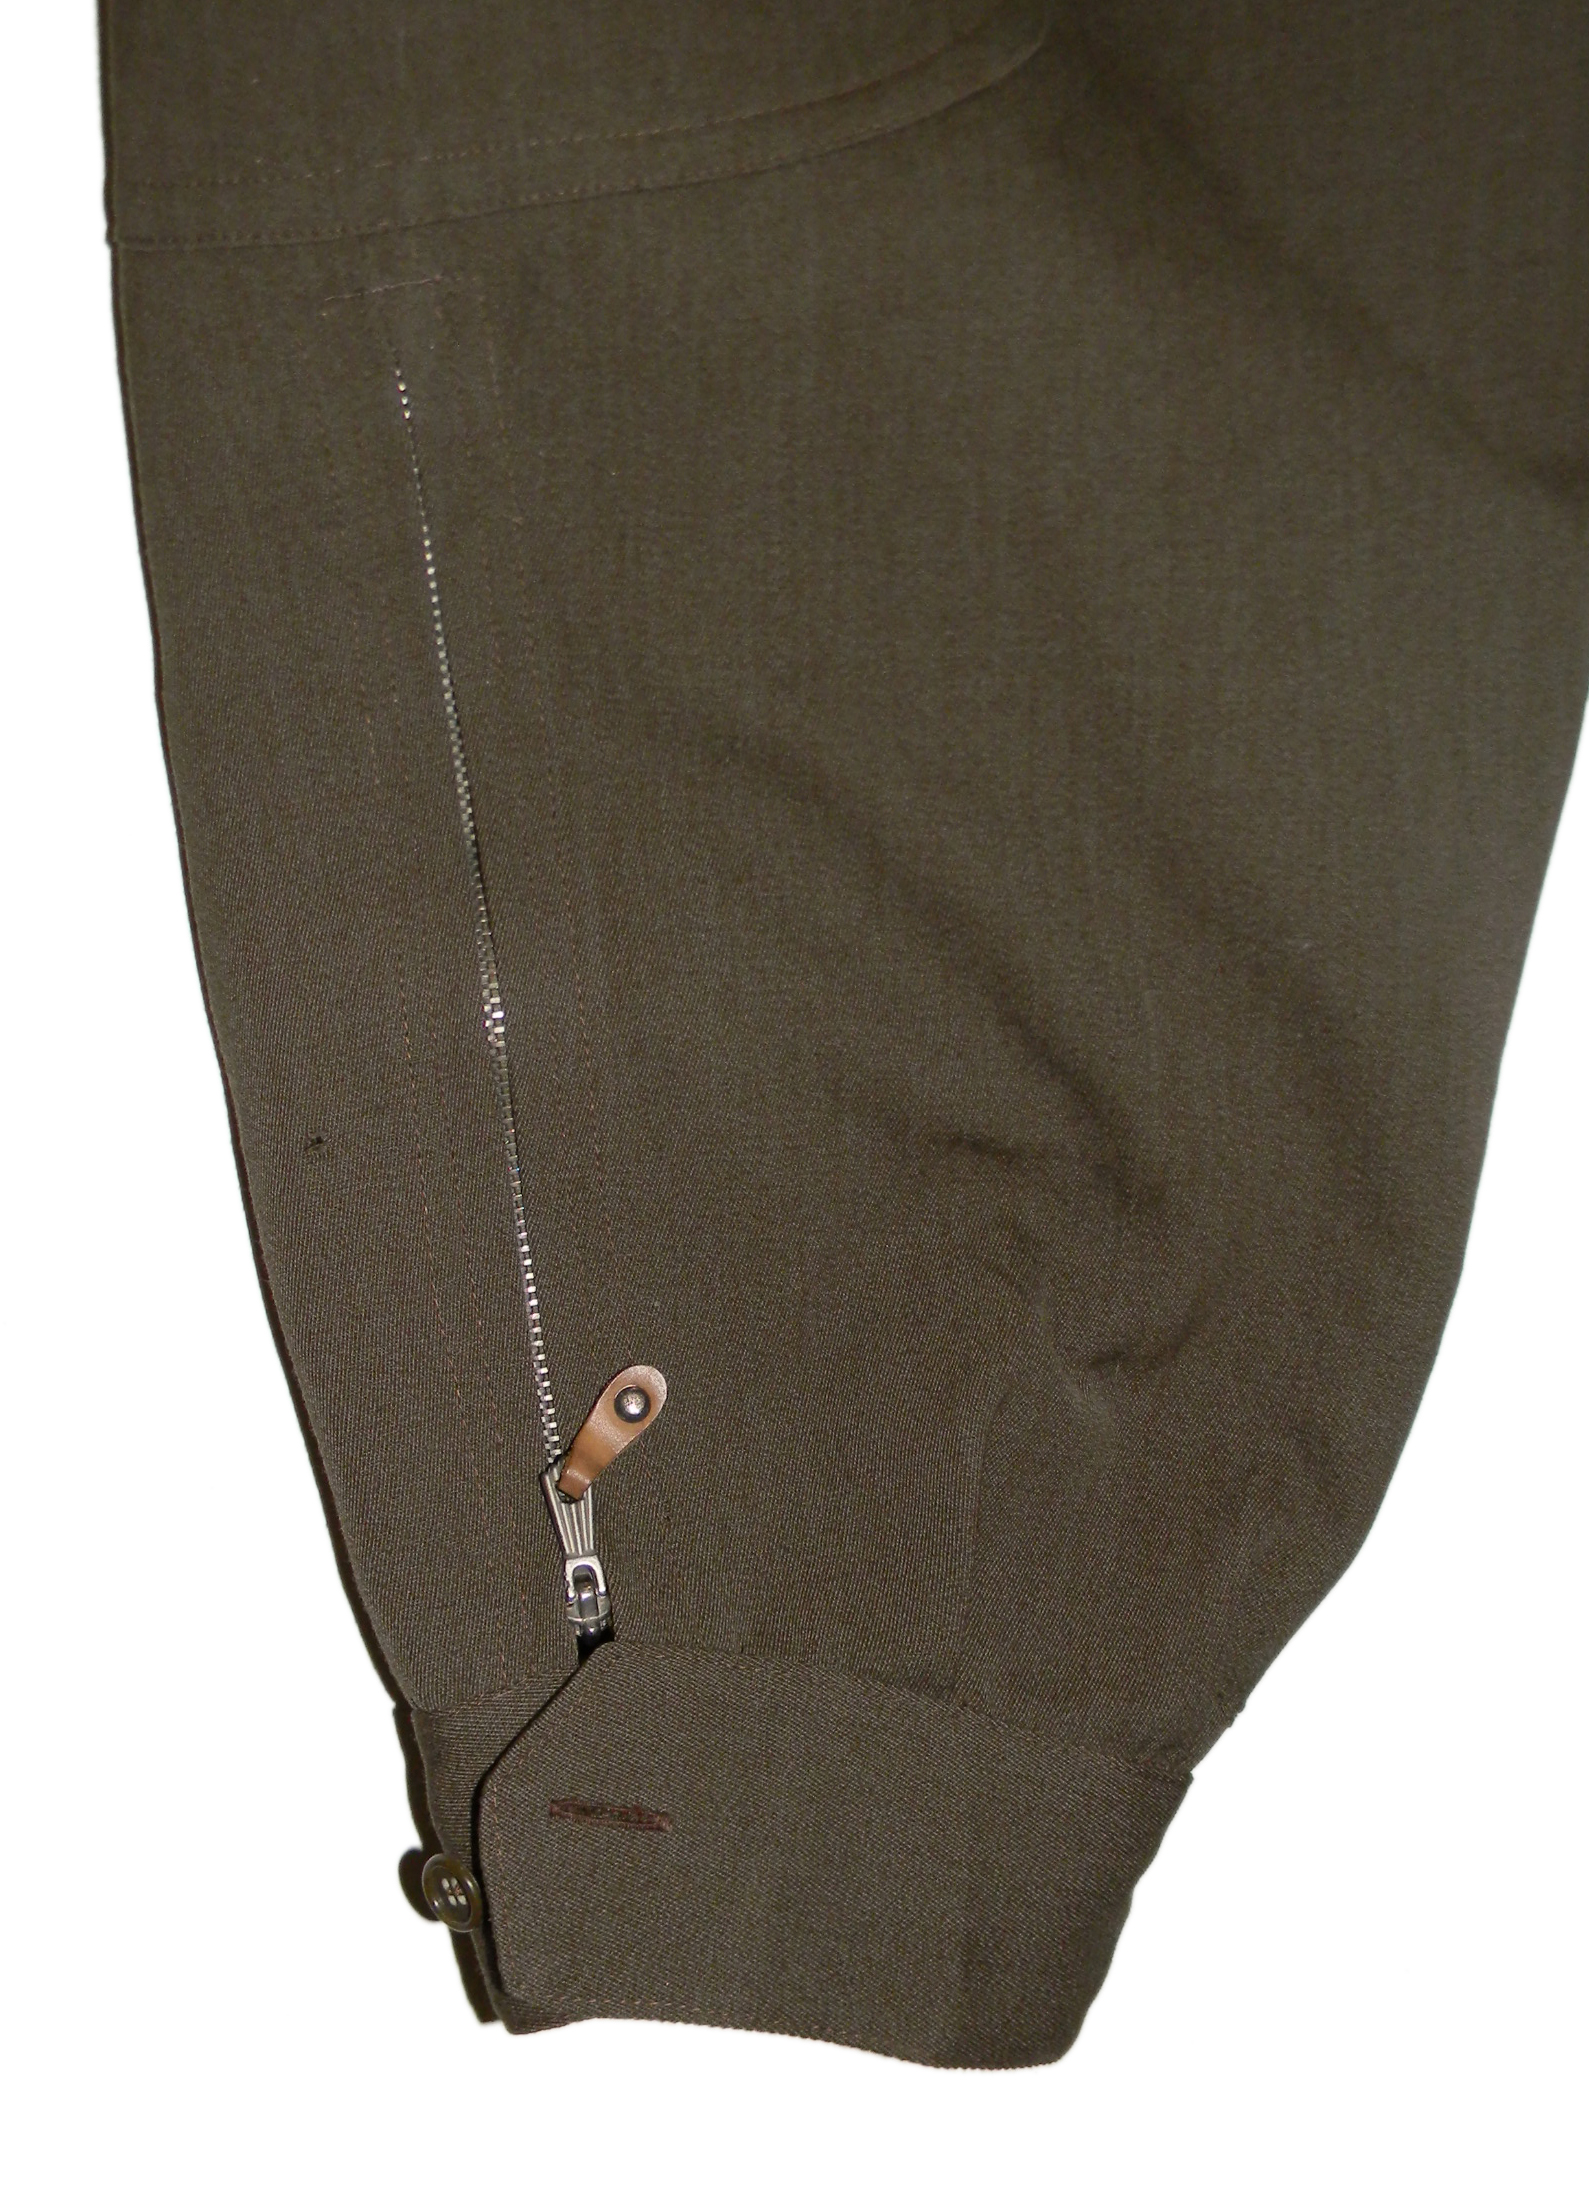 WWII Italian flying suit trousers